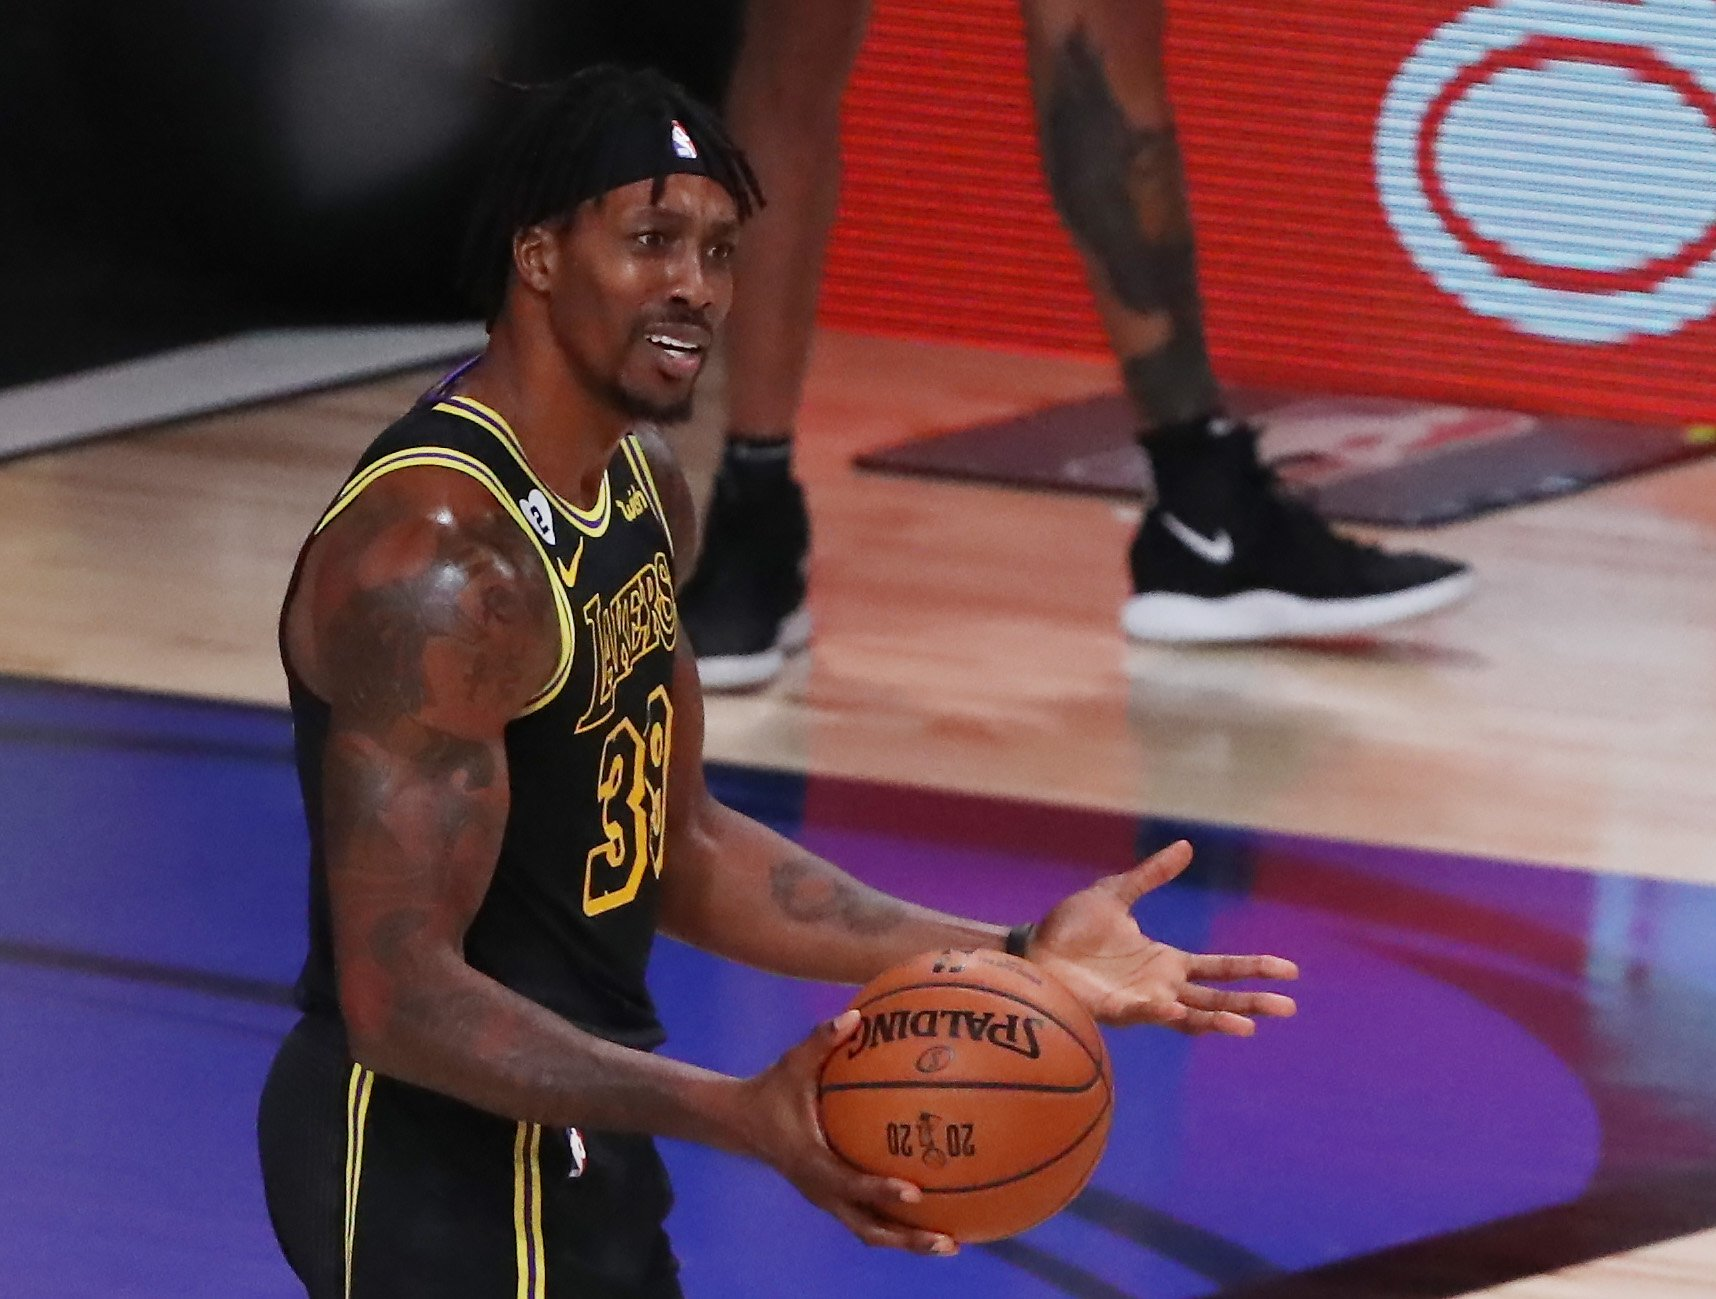 Dwight Howard Accidentally Leaks DMs Of His Wife Grilling Him About His 'Friends' During IG Live Stream Of Lakers' Celebration